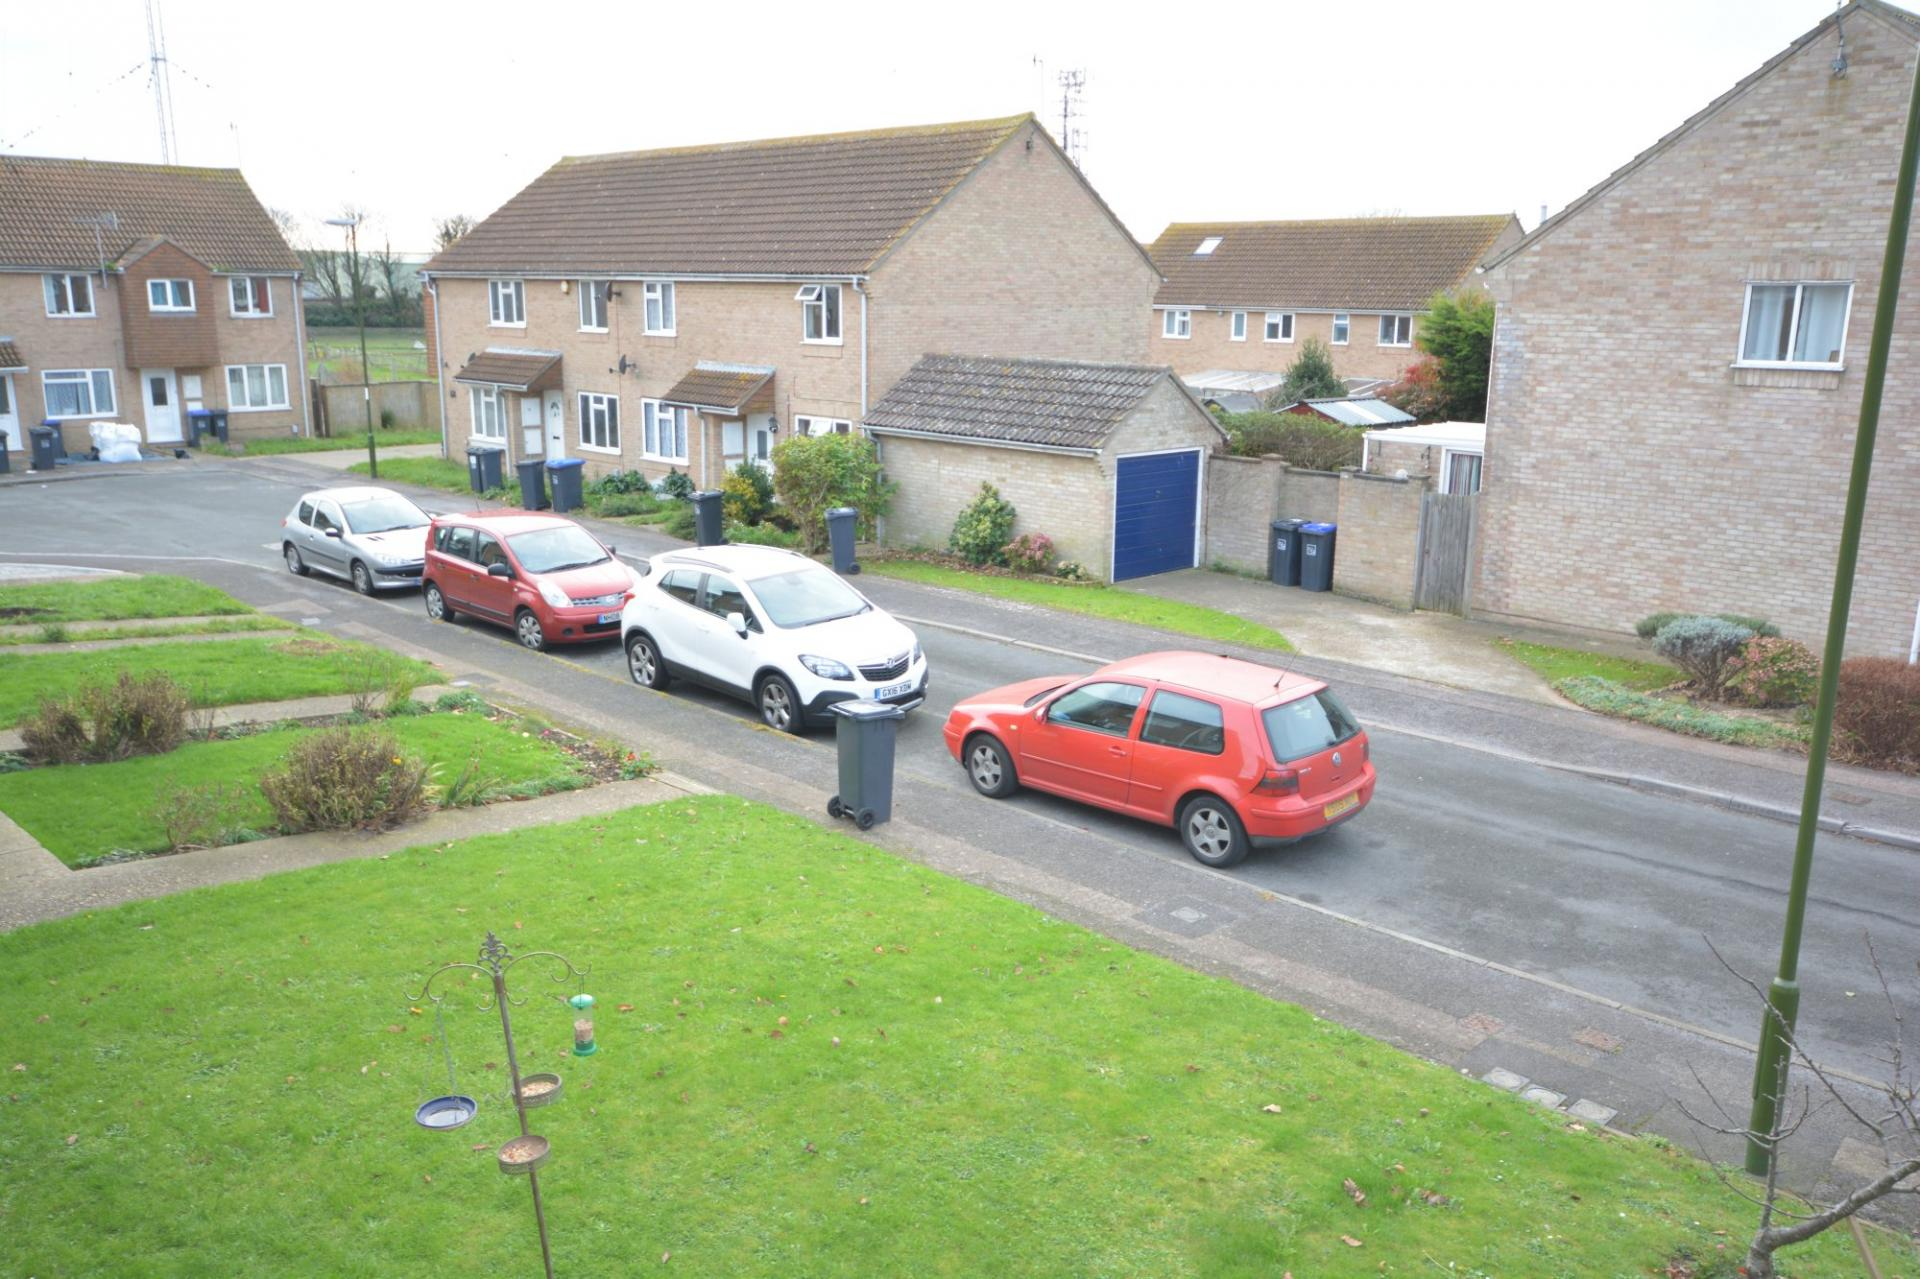 1 Bedroom Terraced House For Sale In Shoreham By Sea